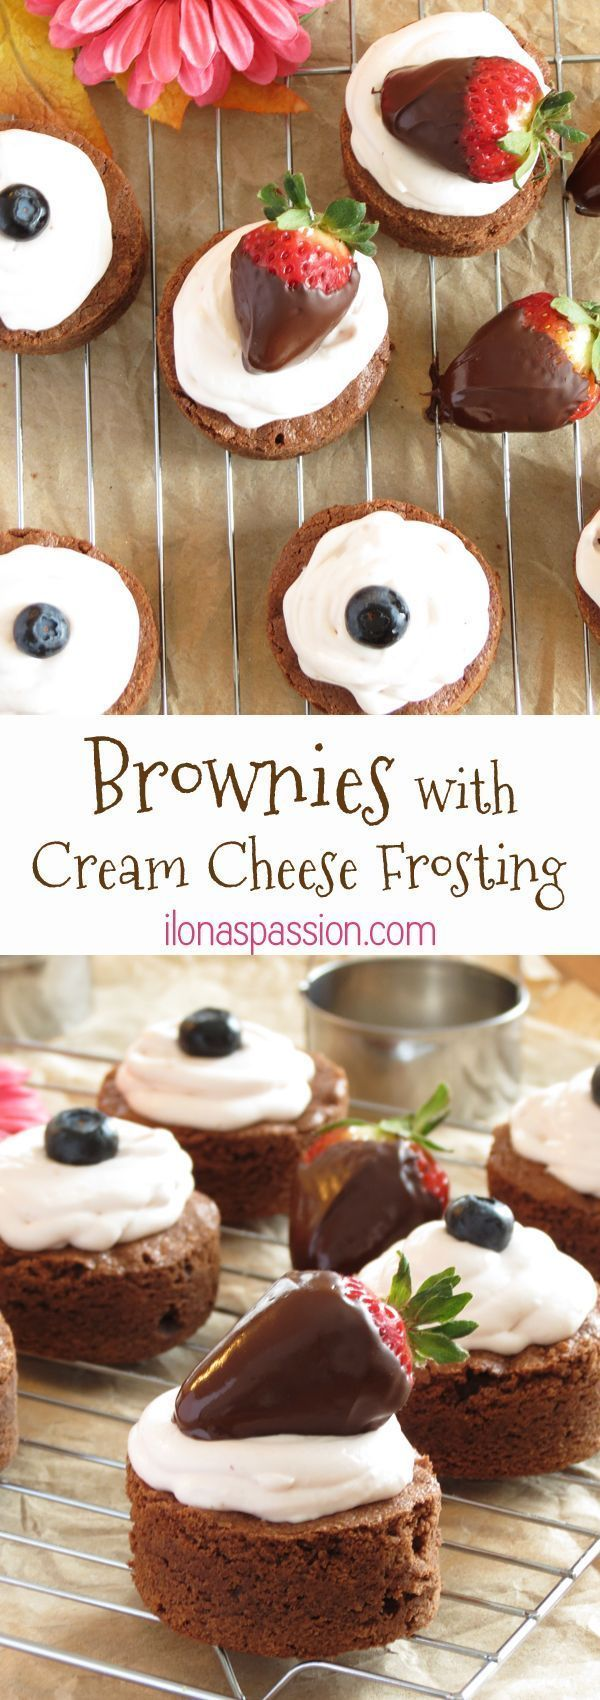 The Best Homemade Brownies With Strawberry Cream Cheese Frosting By Ilonaspassion Com